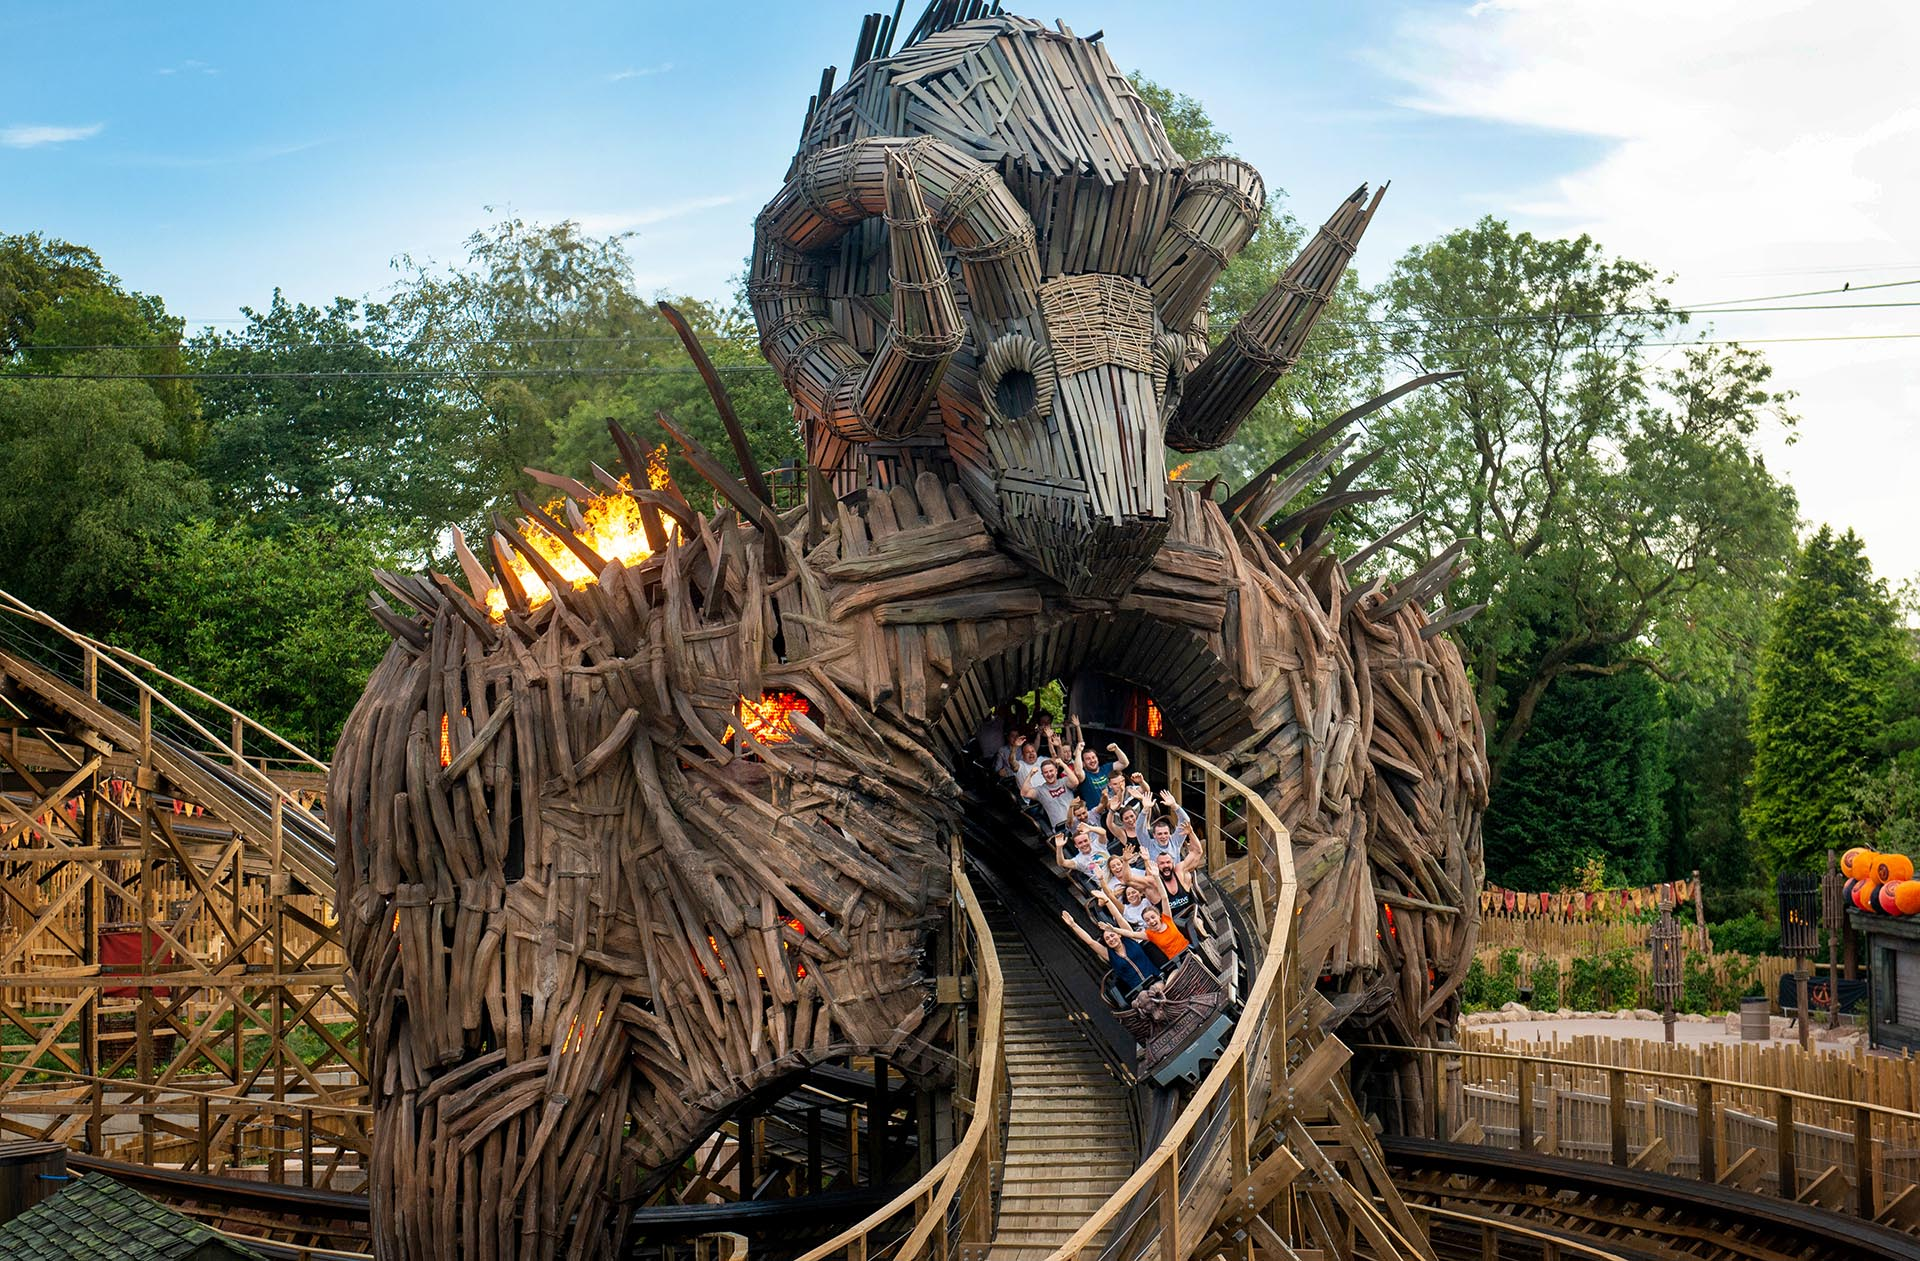 People scream on a rollercoaster at Alton Towers theme park.